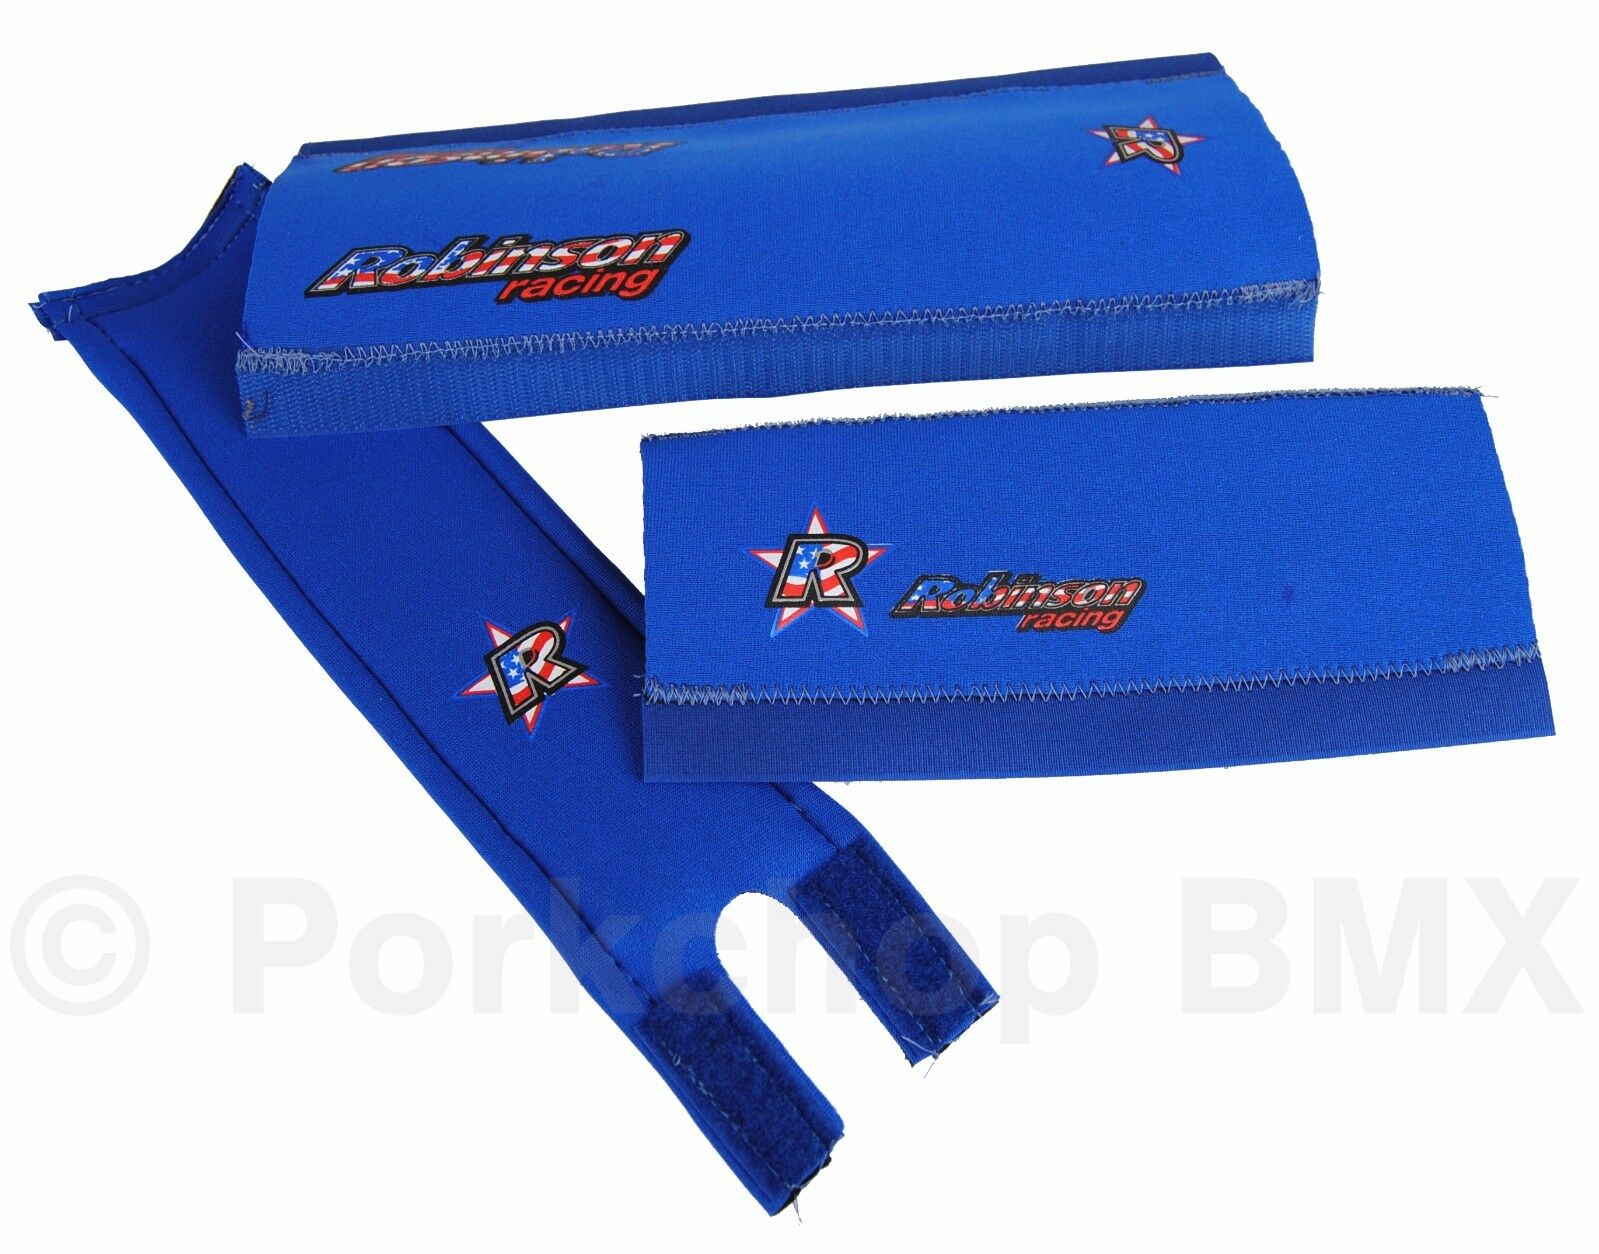 NEW 1995+ Robinson old mid school BMX neoprene padset pads MADE IN USA - blueE